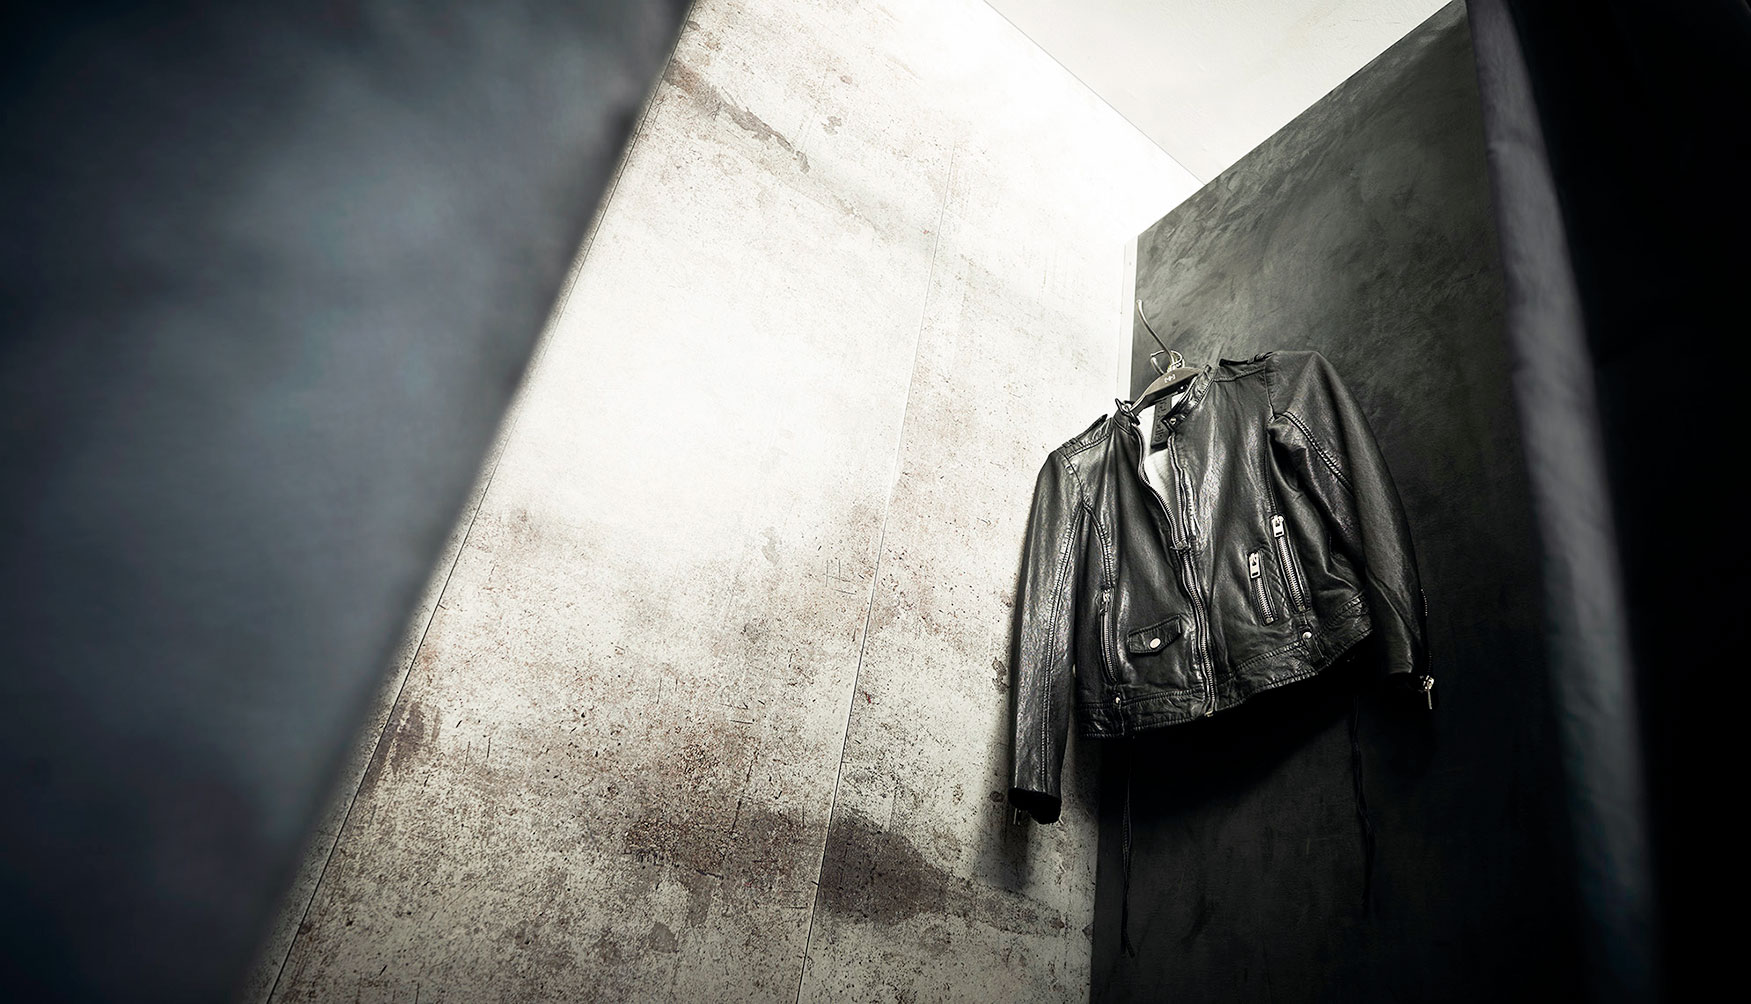 Leather jacket hanging in a changing room in the store duke and lyle fashion product commercial photography Hamburg Philipp Burkart young photographer